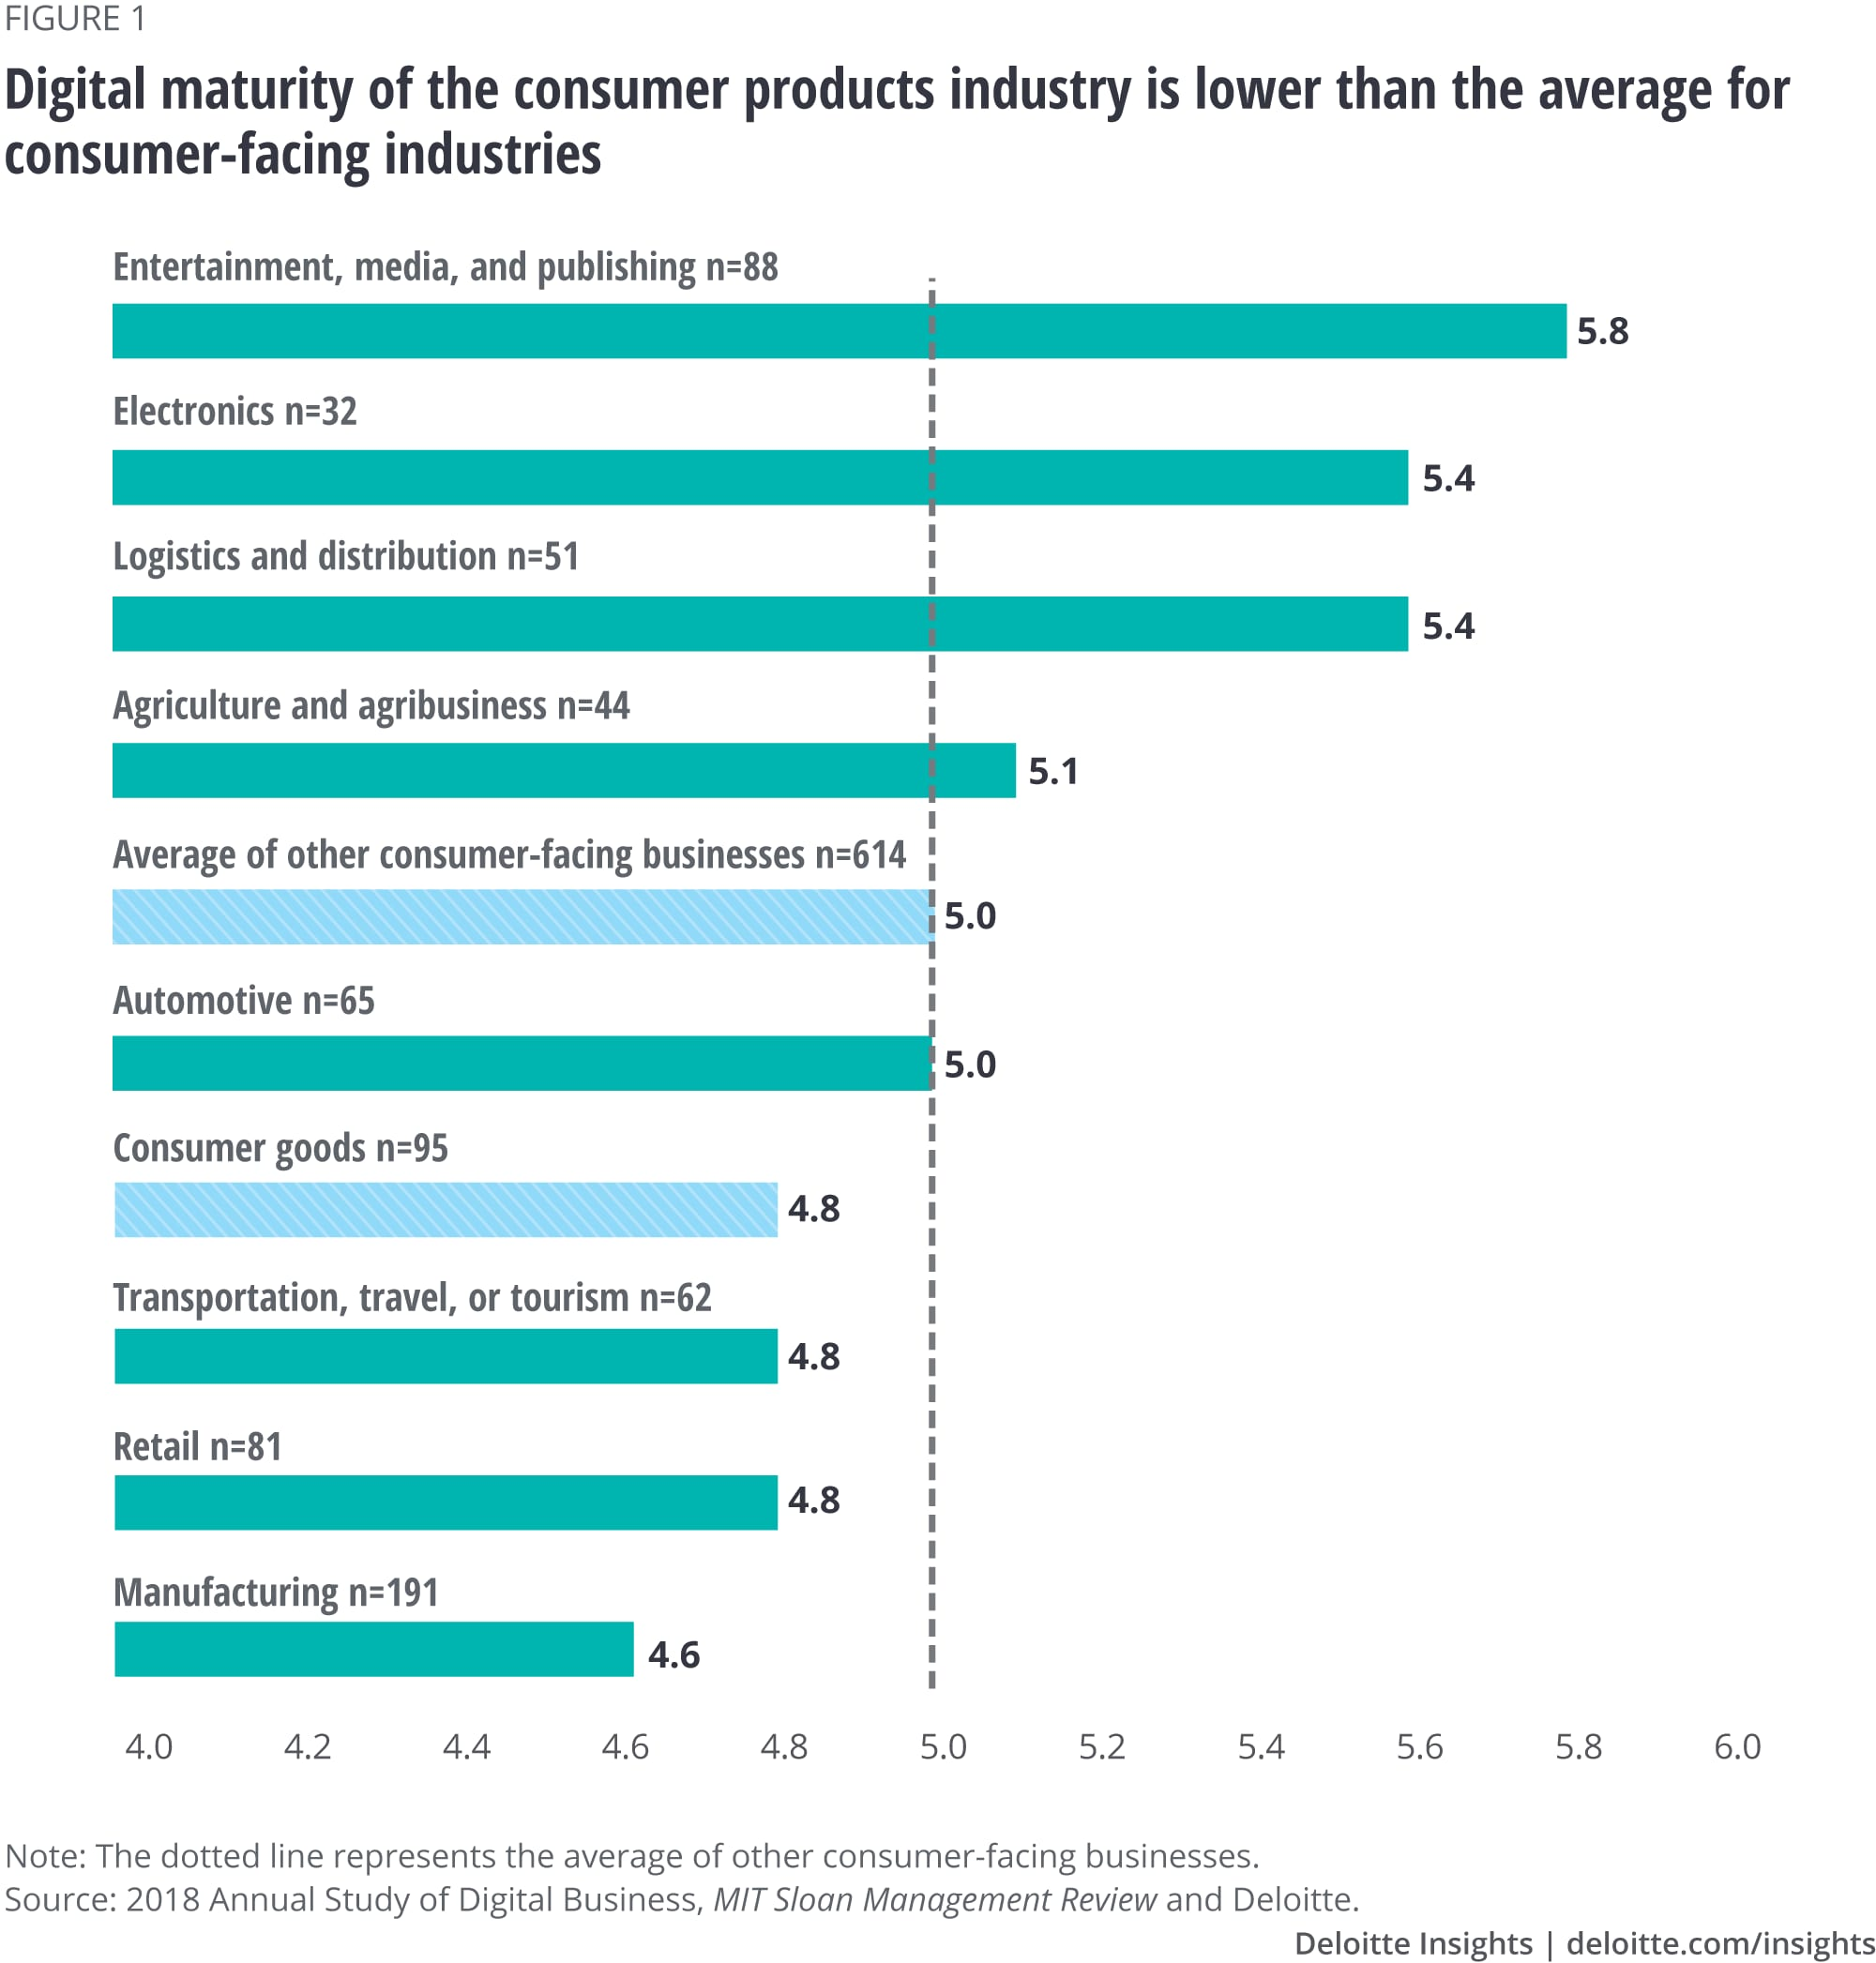 Digital maturity of the consumer products industry is lower than the average for consumer-facing industries